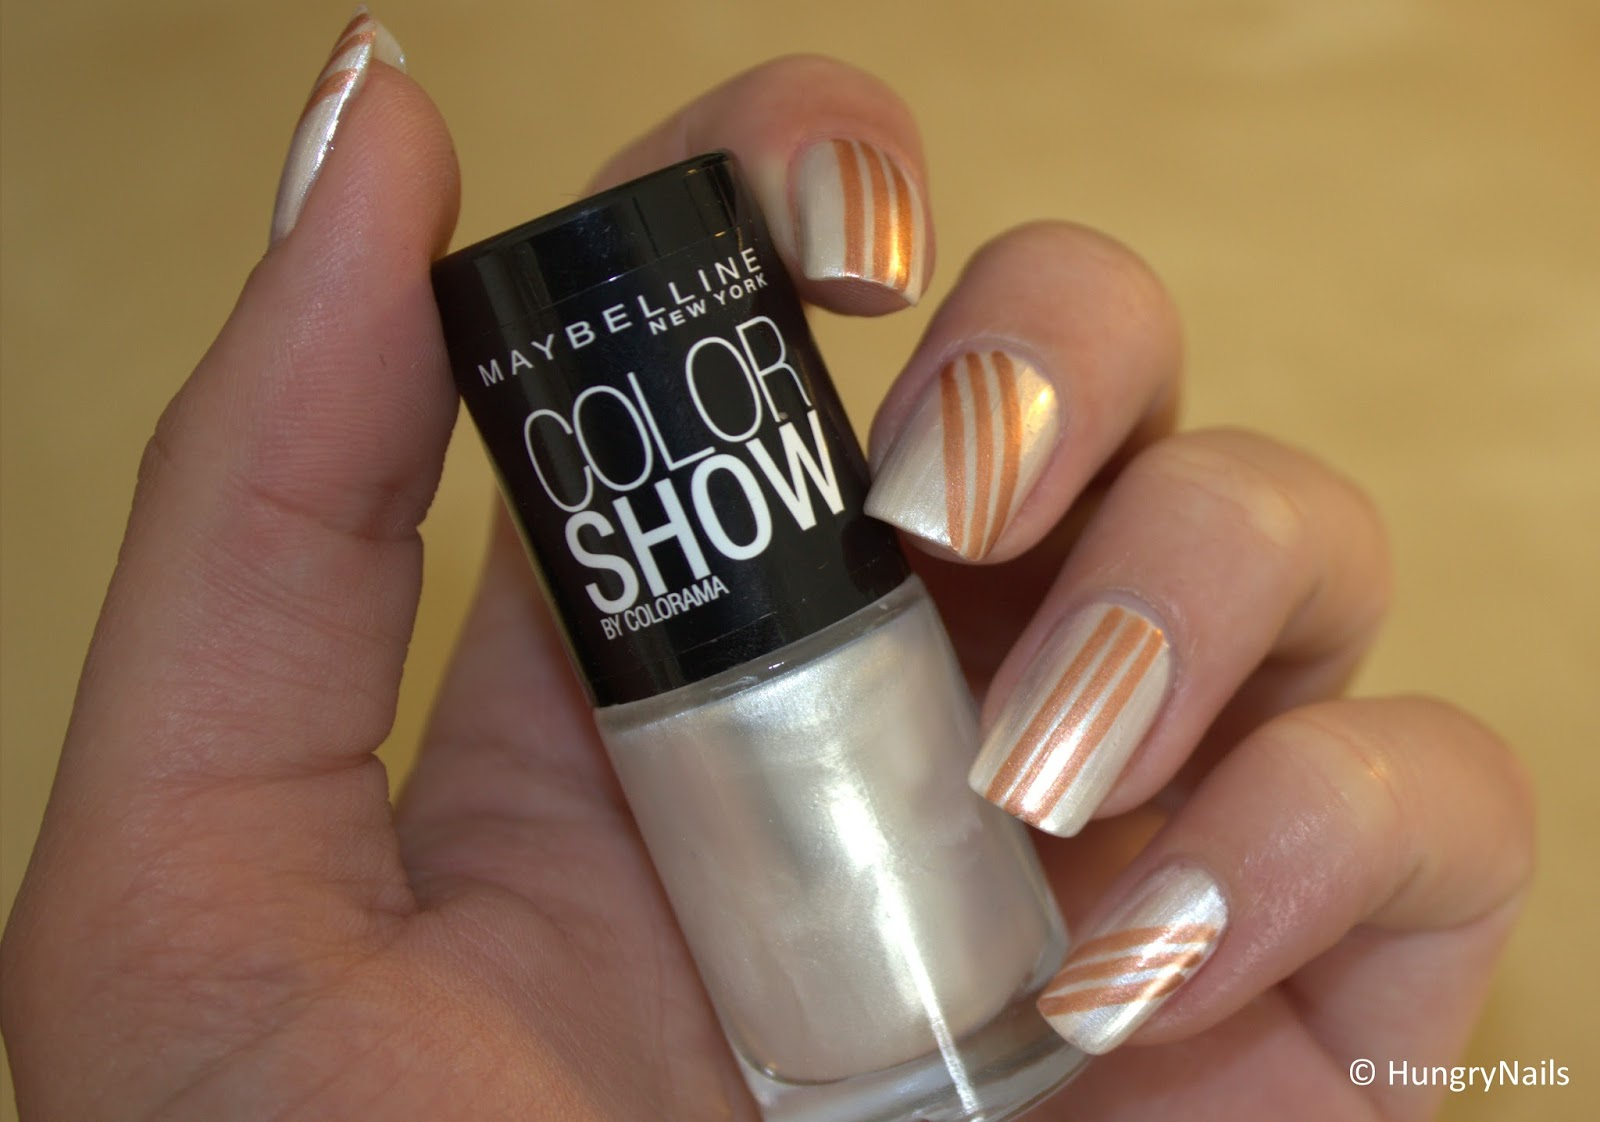 http://hungrynails.blogspot.de/2014/06/maybelline-woche-3-sporty-stripes.html